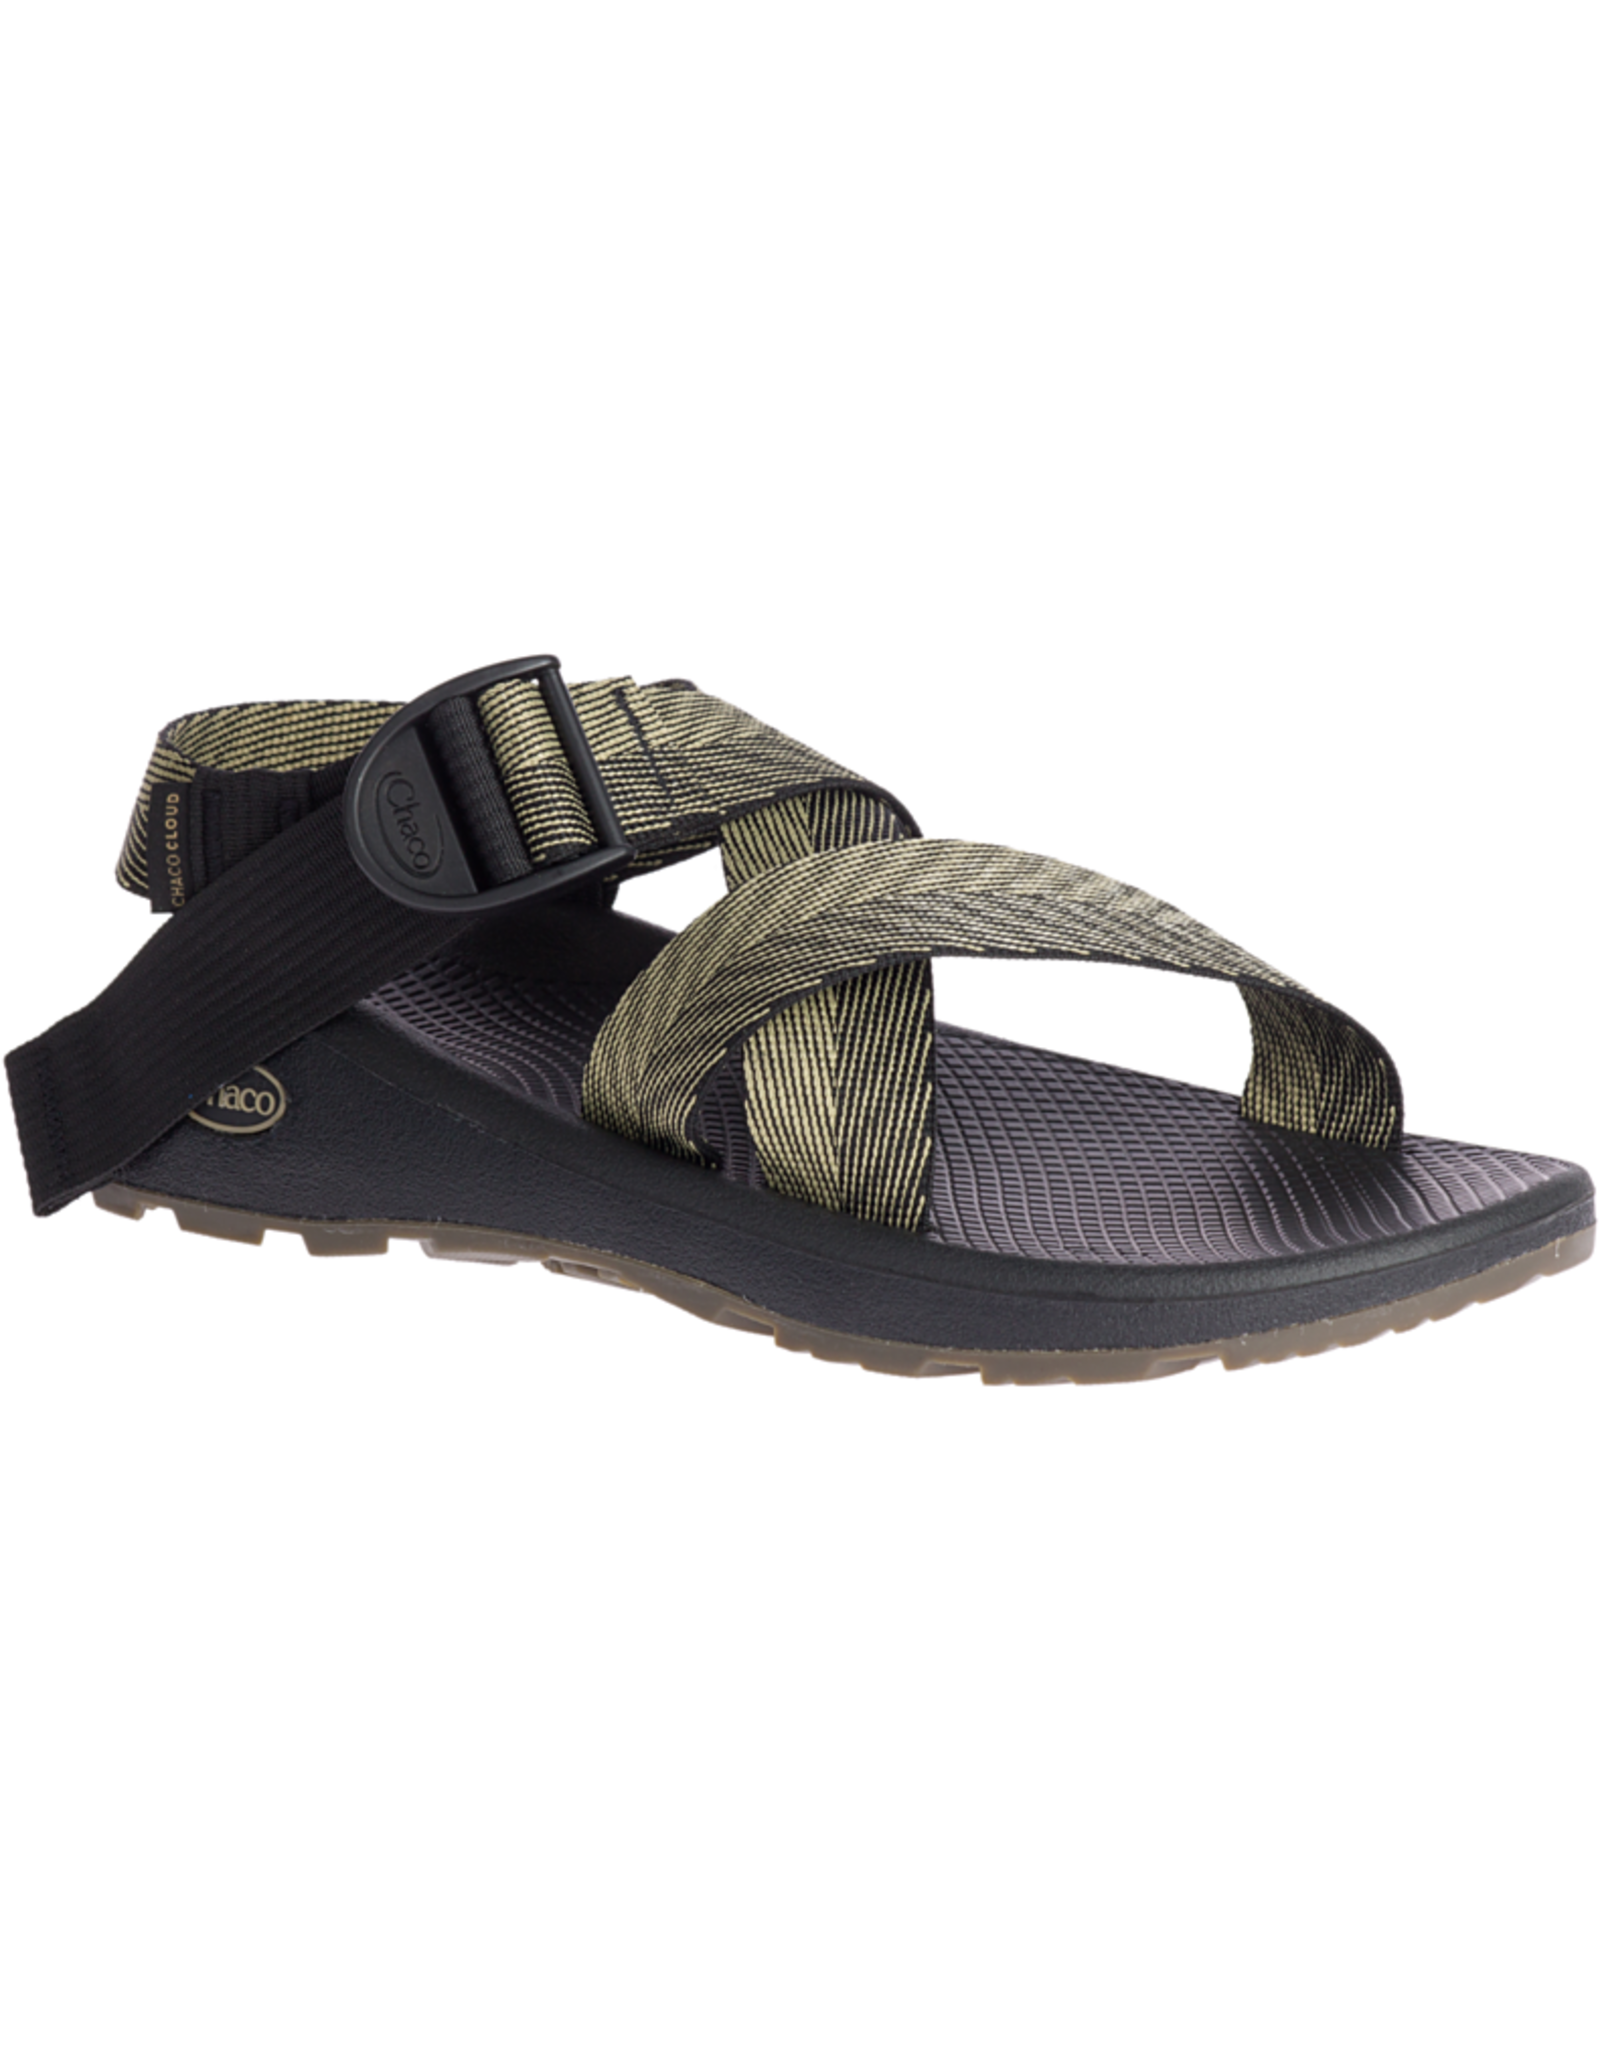 CHACO MEN'S MEGA Z/CLOUD-ODDS BLACK